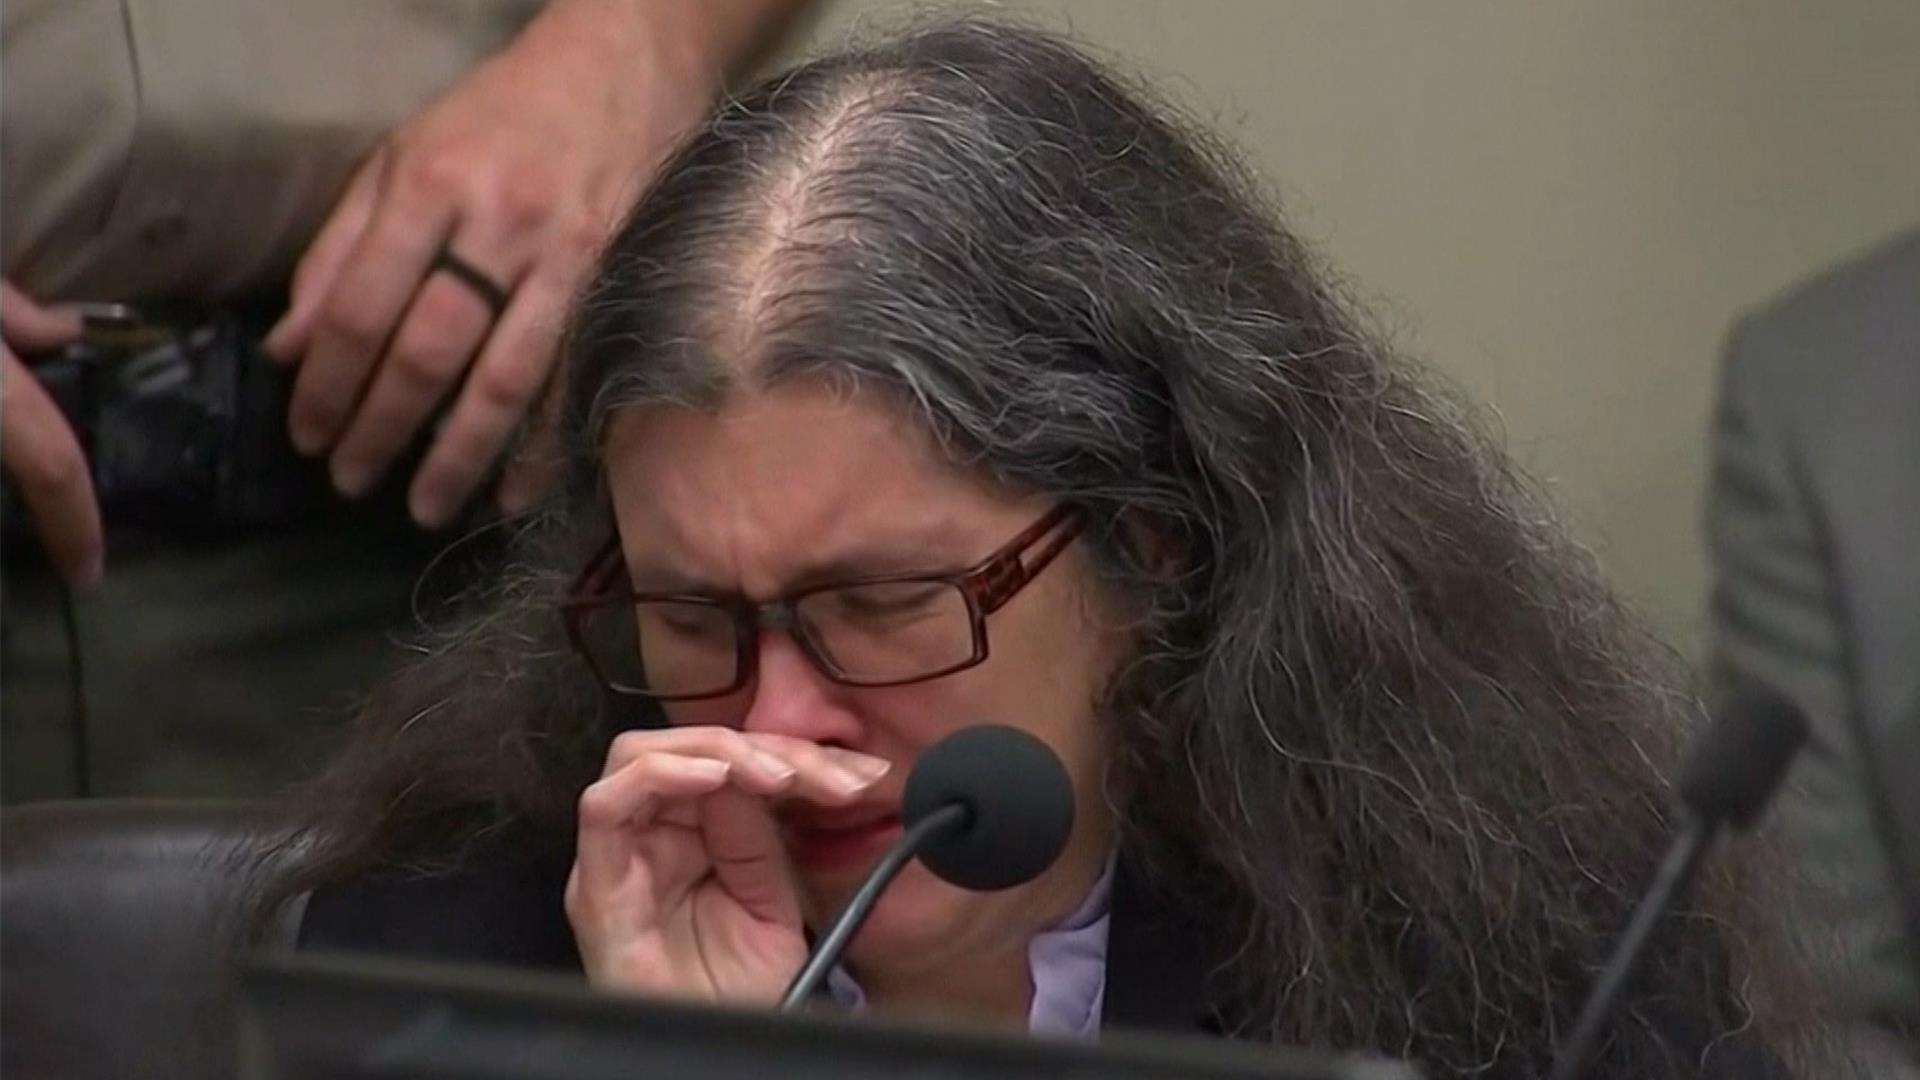 House of horrors case: Turpin parents cry before sentencing